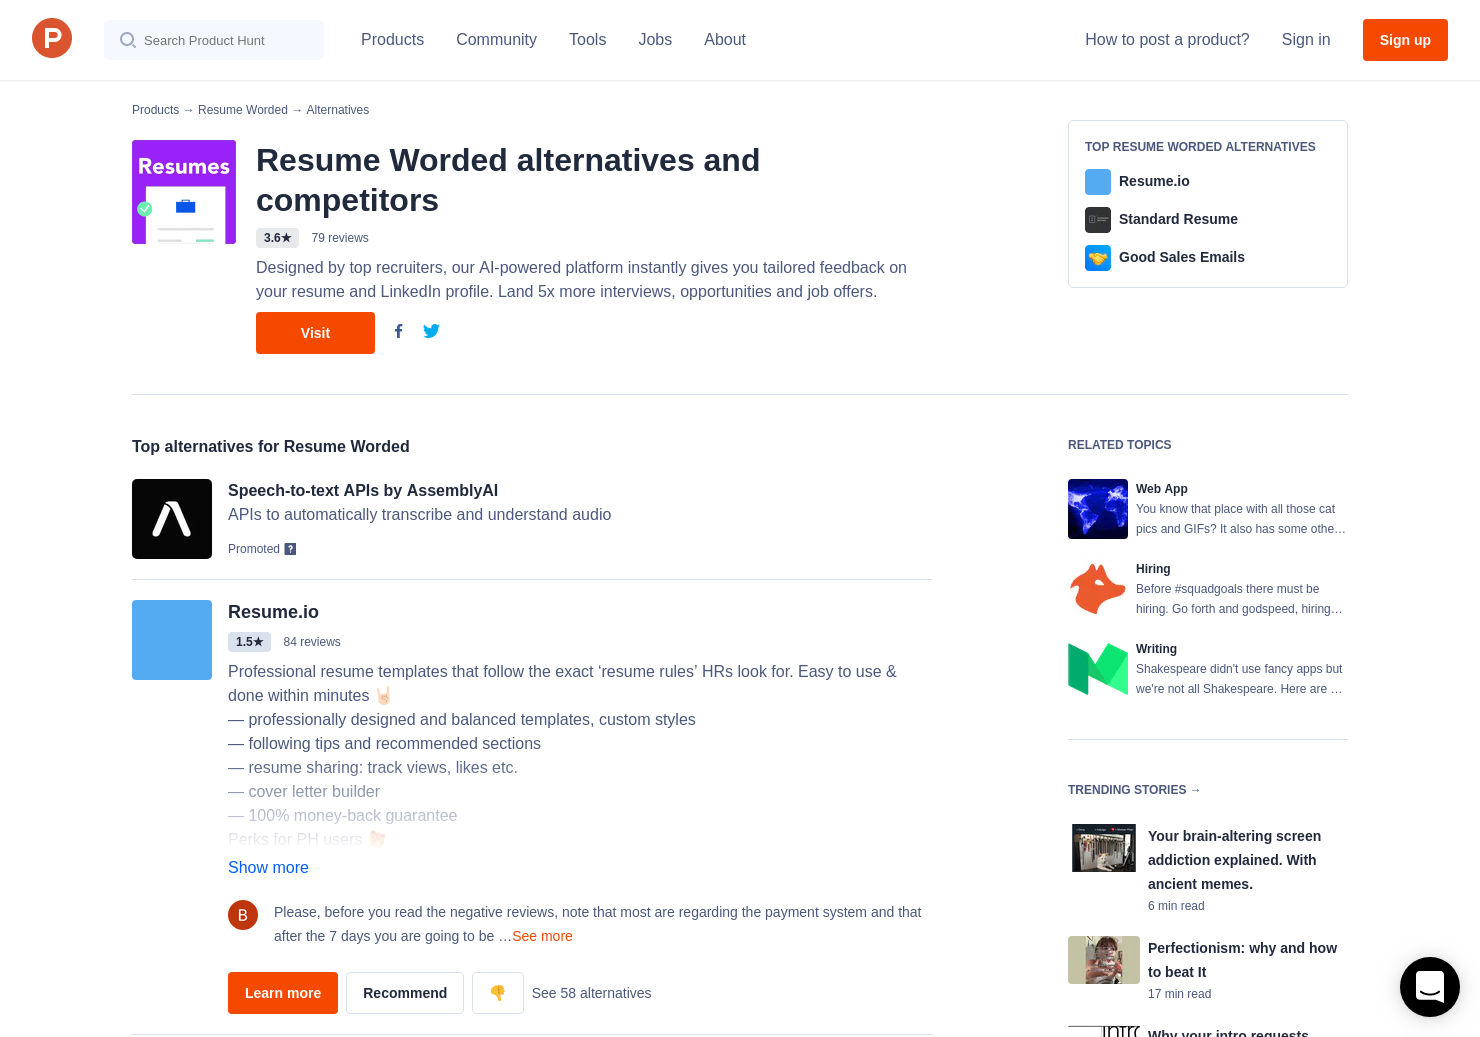 10 alternatives to resume worded product hunt